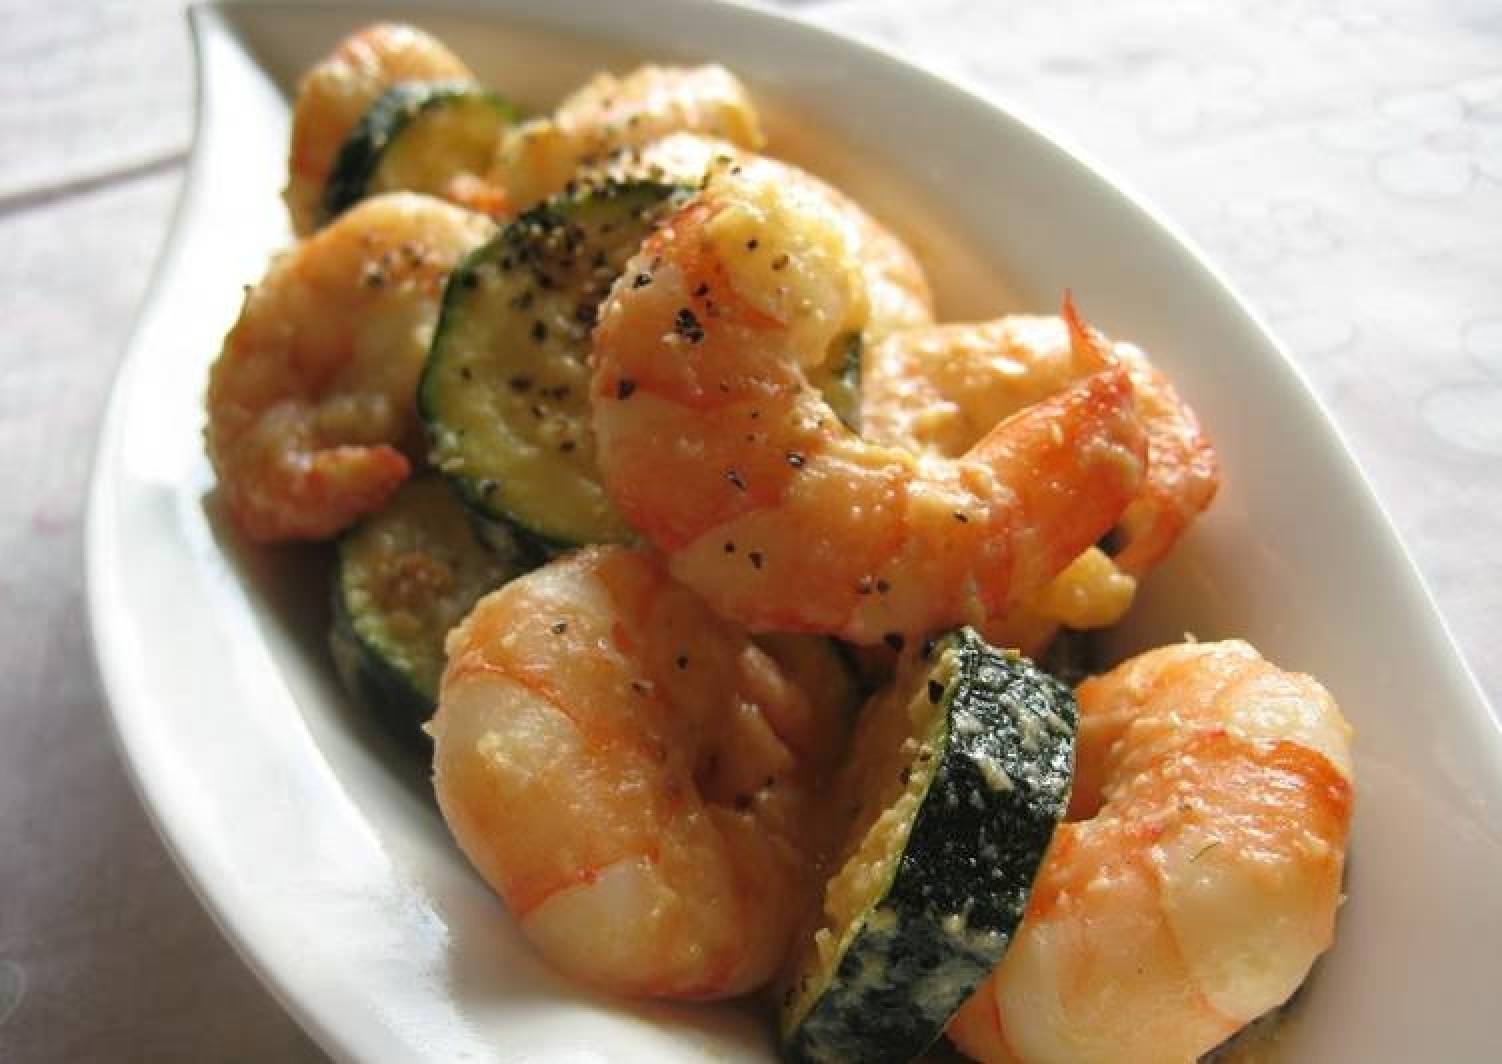 Shrimp and Zucchini Stir Fried In Milk And Miso